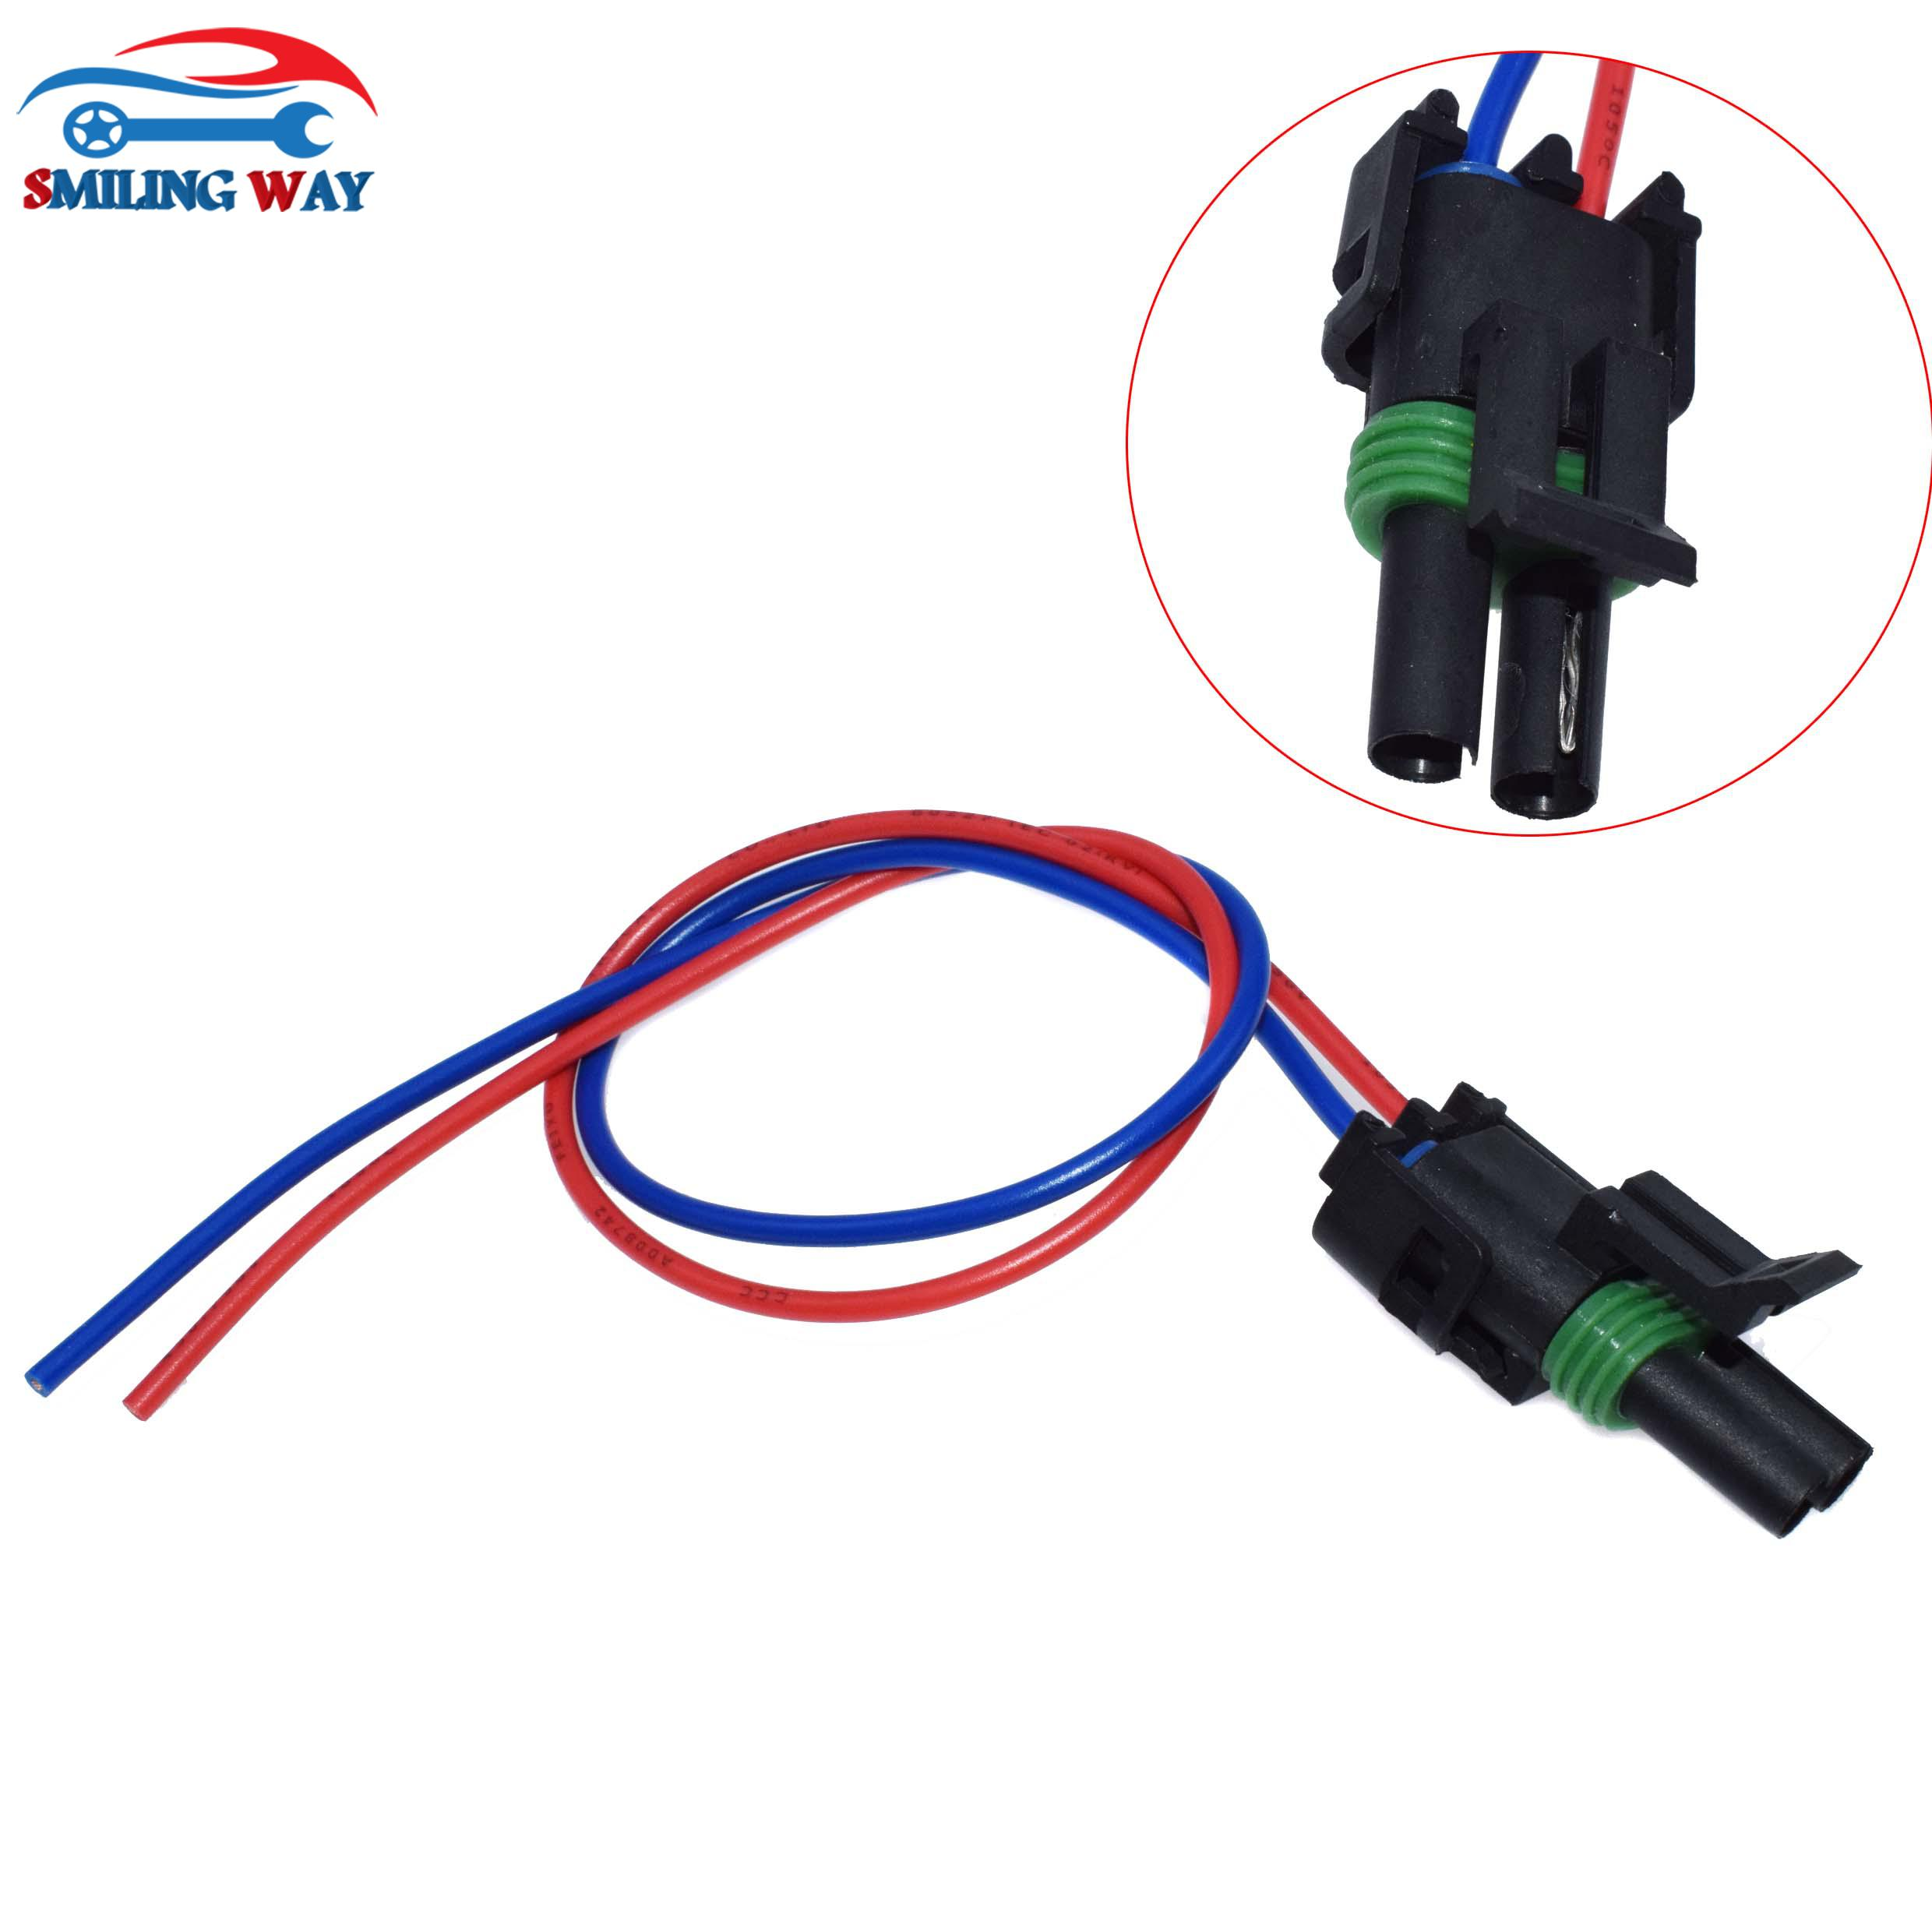 [SCHEMATICS_4ER]  VSS Vehicle Speed Sensor/ Backup Reverse Light Switch Lamp T5 T56 Wiring  Harness Connector Pigtail Cable Plug For Chevrolet GMC|Car Switches &  Relays| - AliExpress | T56 Wiring Harness |  | www.aliexpress.com